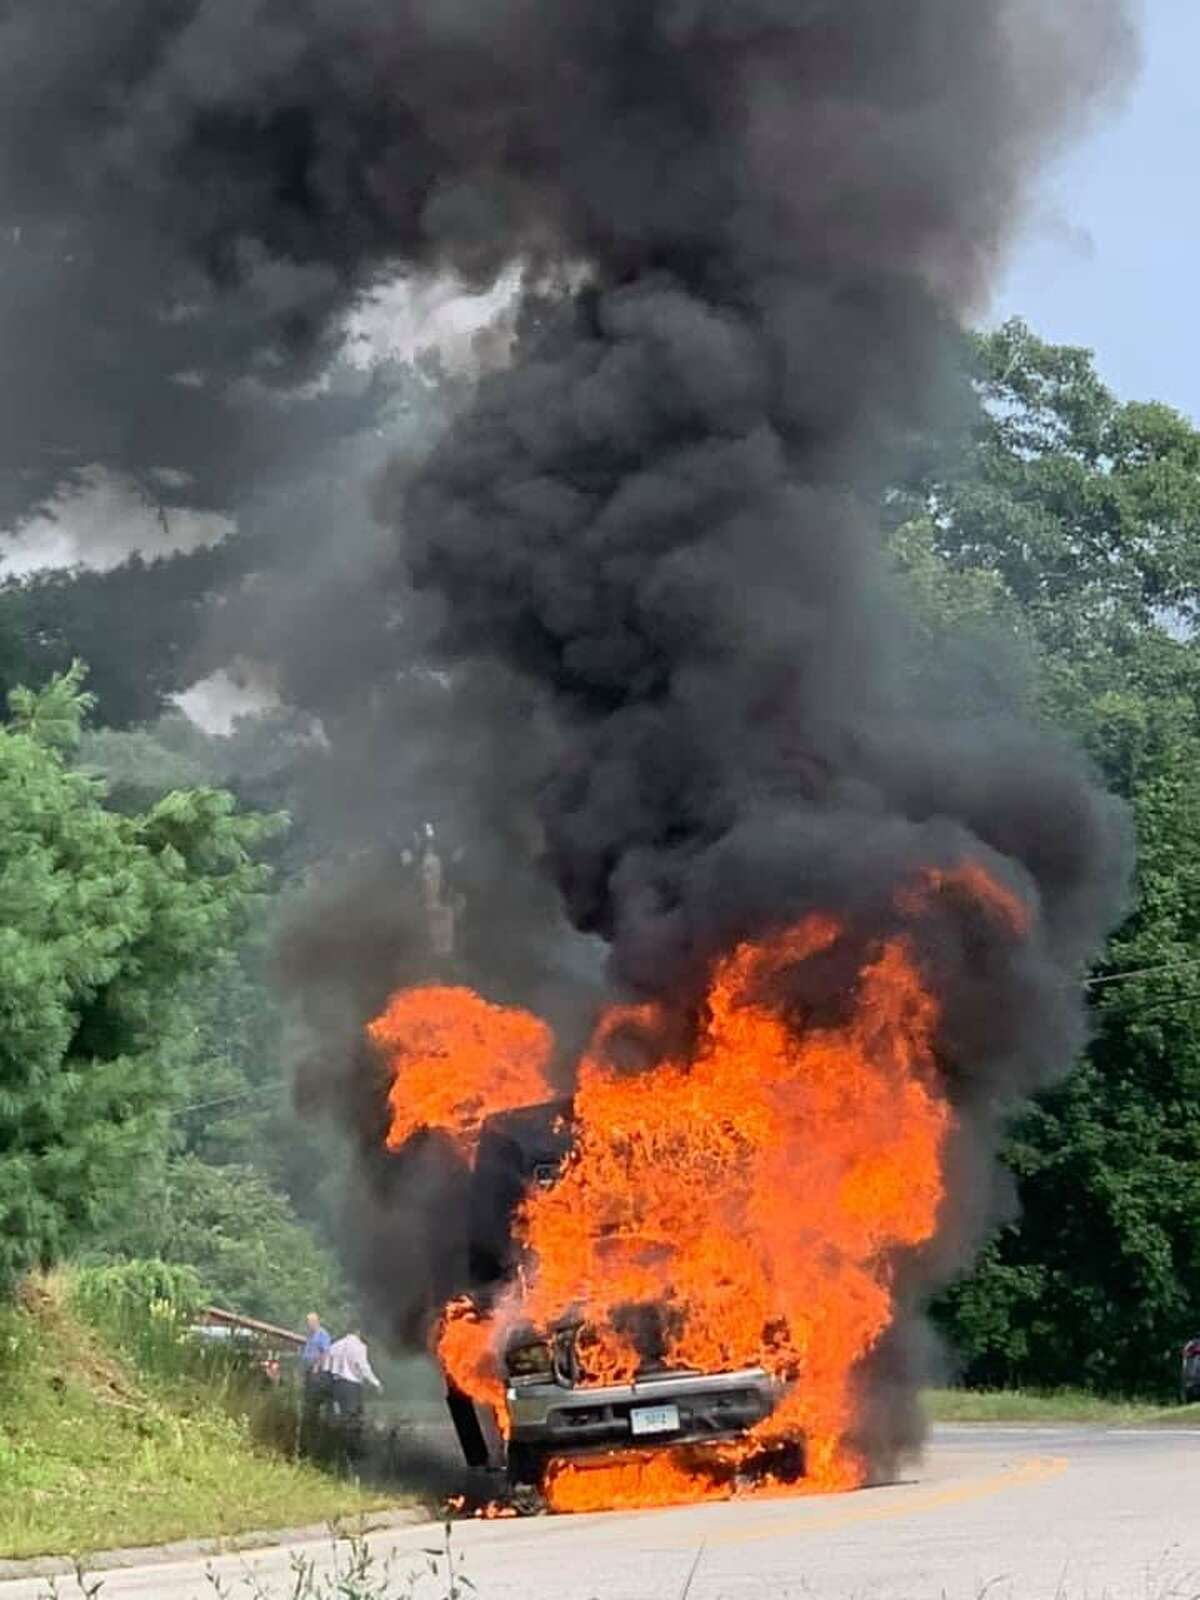 A van catches fire in Morris on the way to a wedding reception at South Farms.